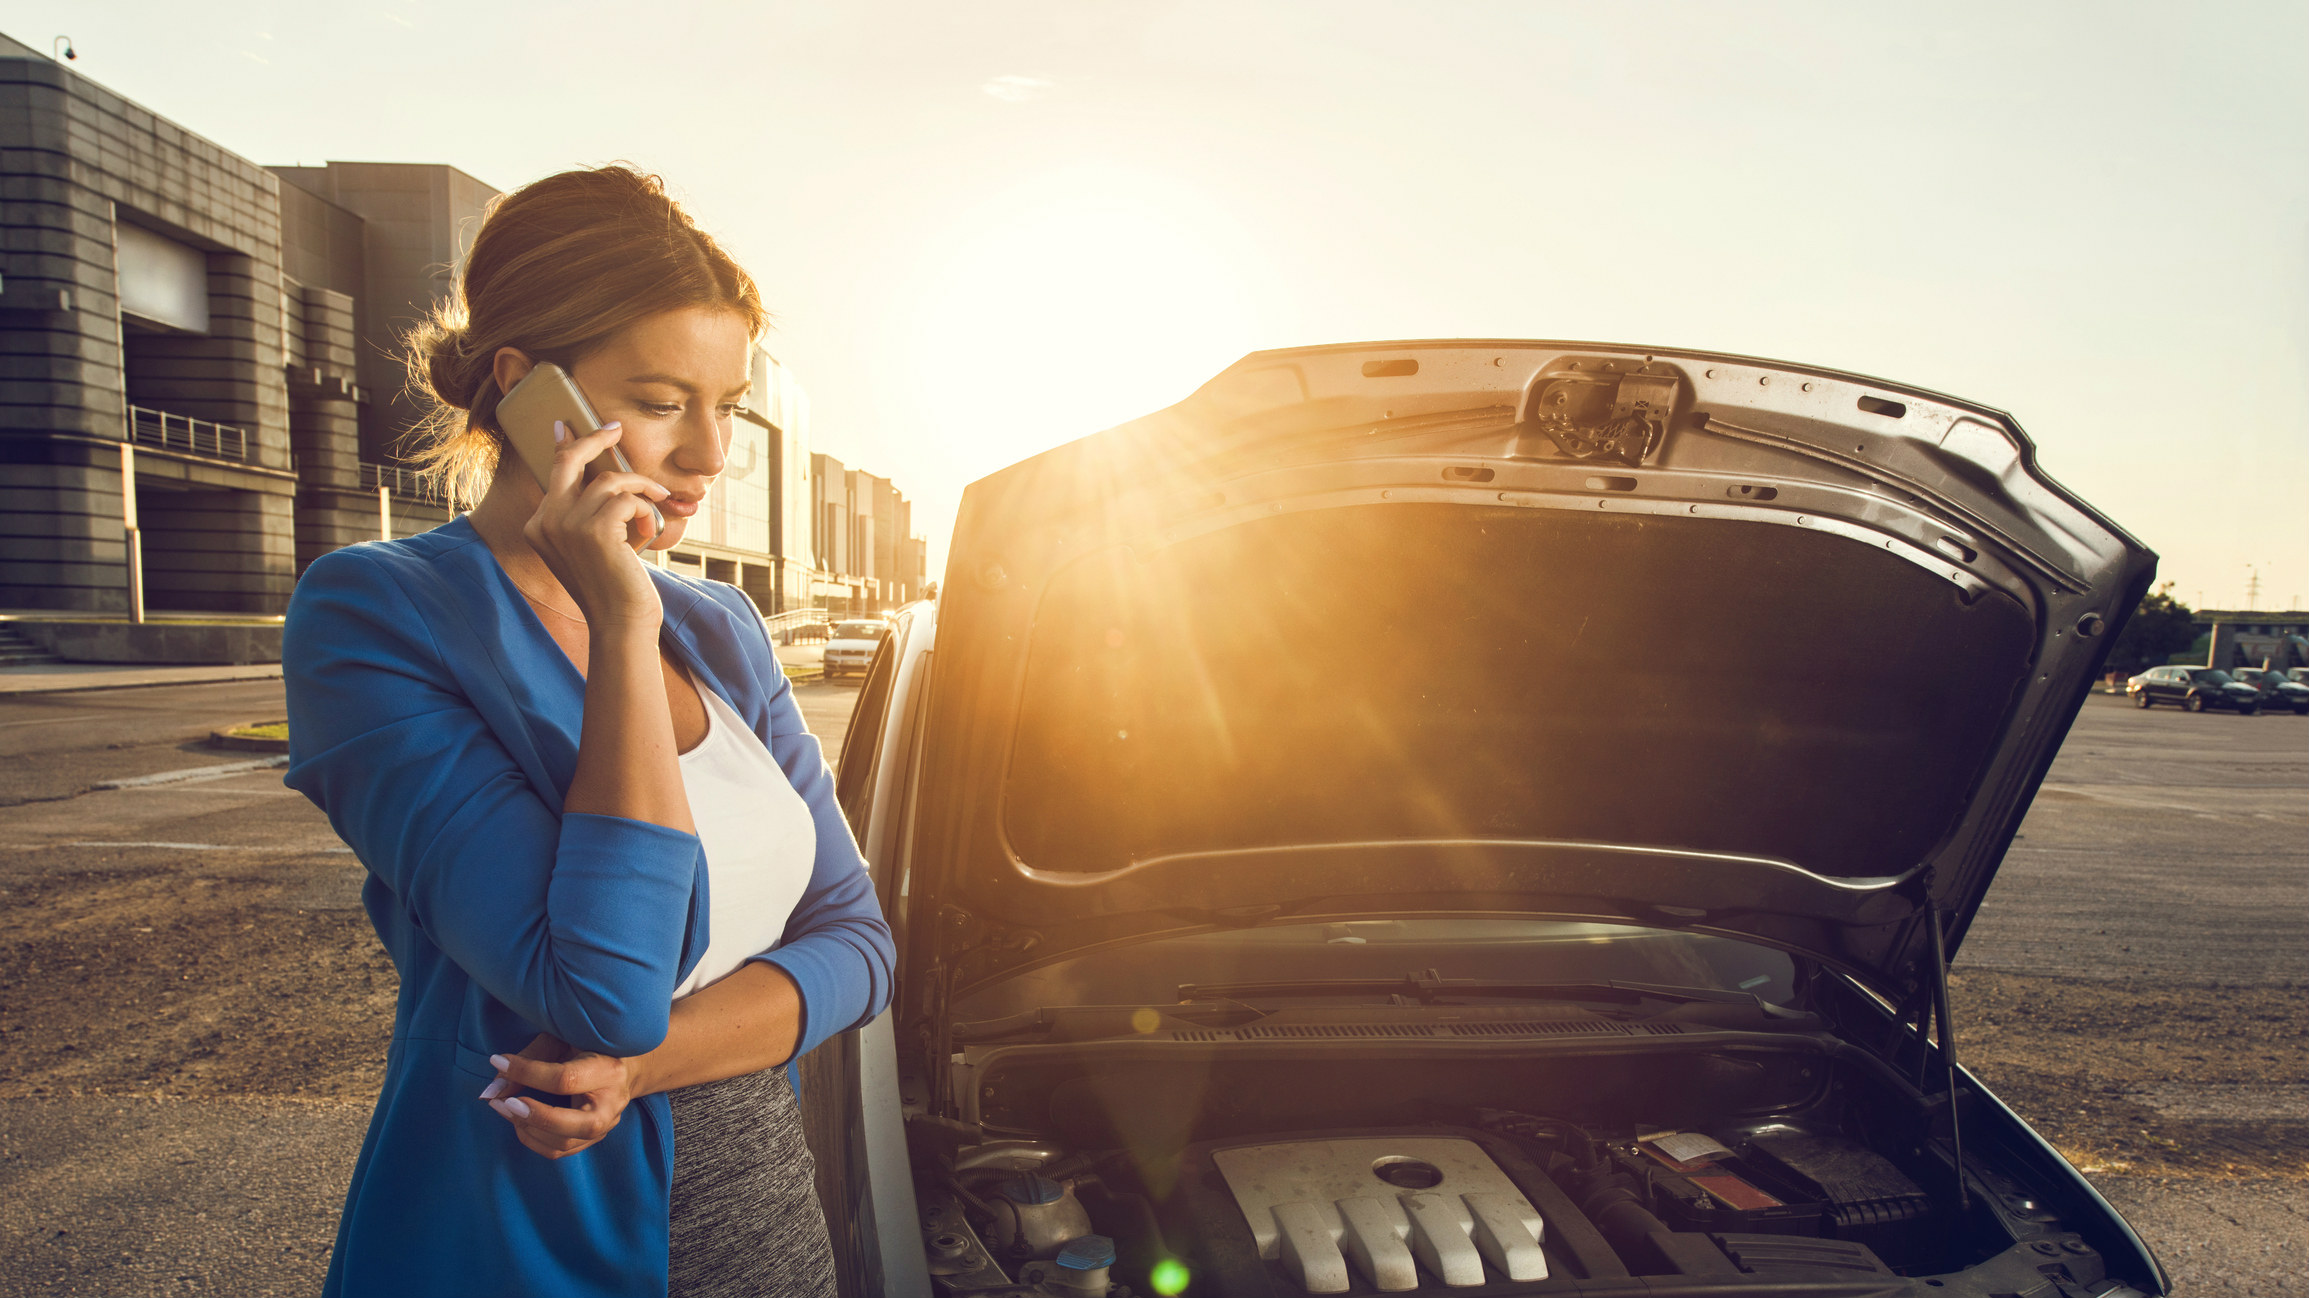 How to choose the most reliable used cars - and avoid the ones that may let you down